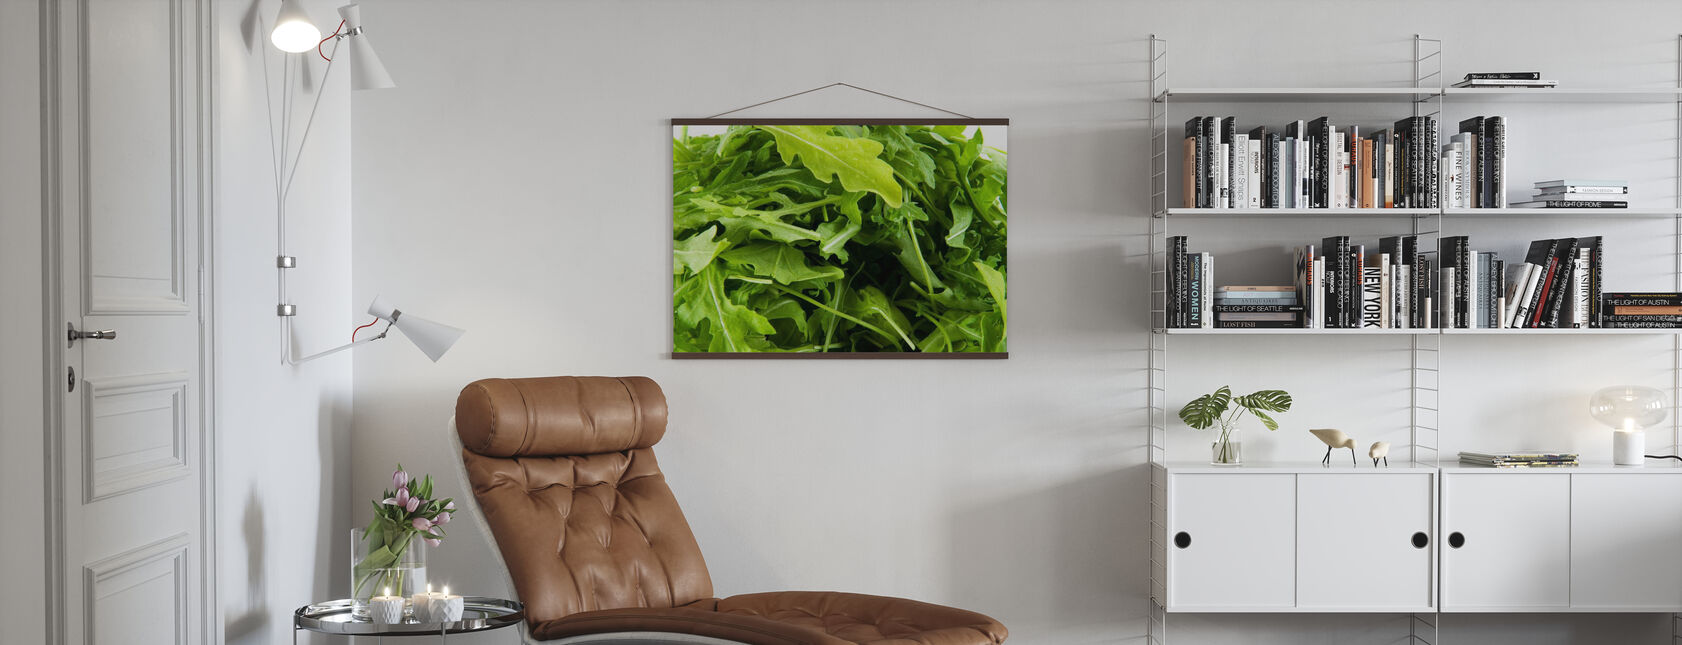 Verse Ruccola - Poster - Woonkamer